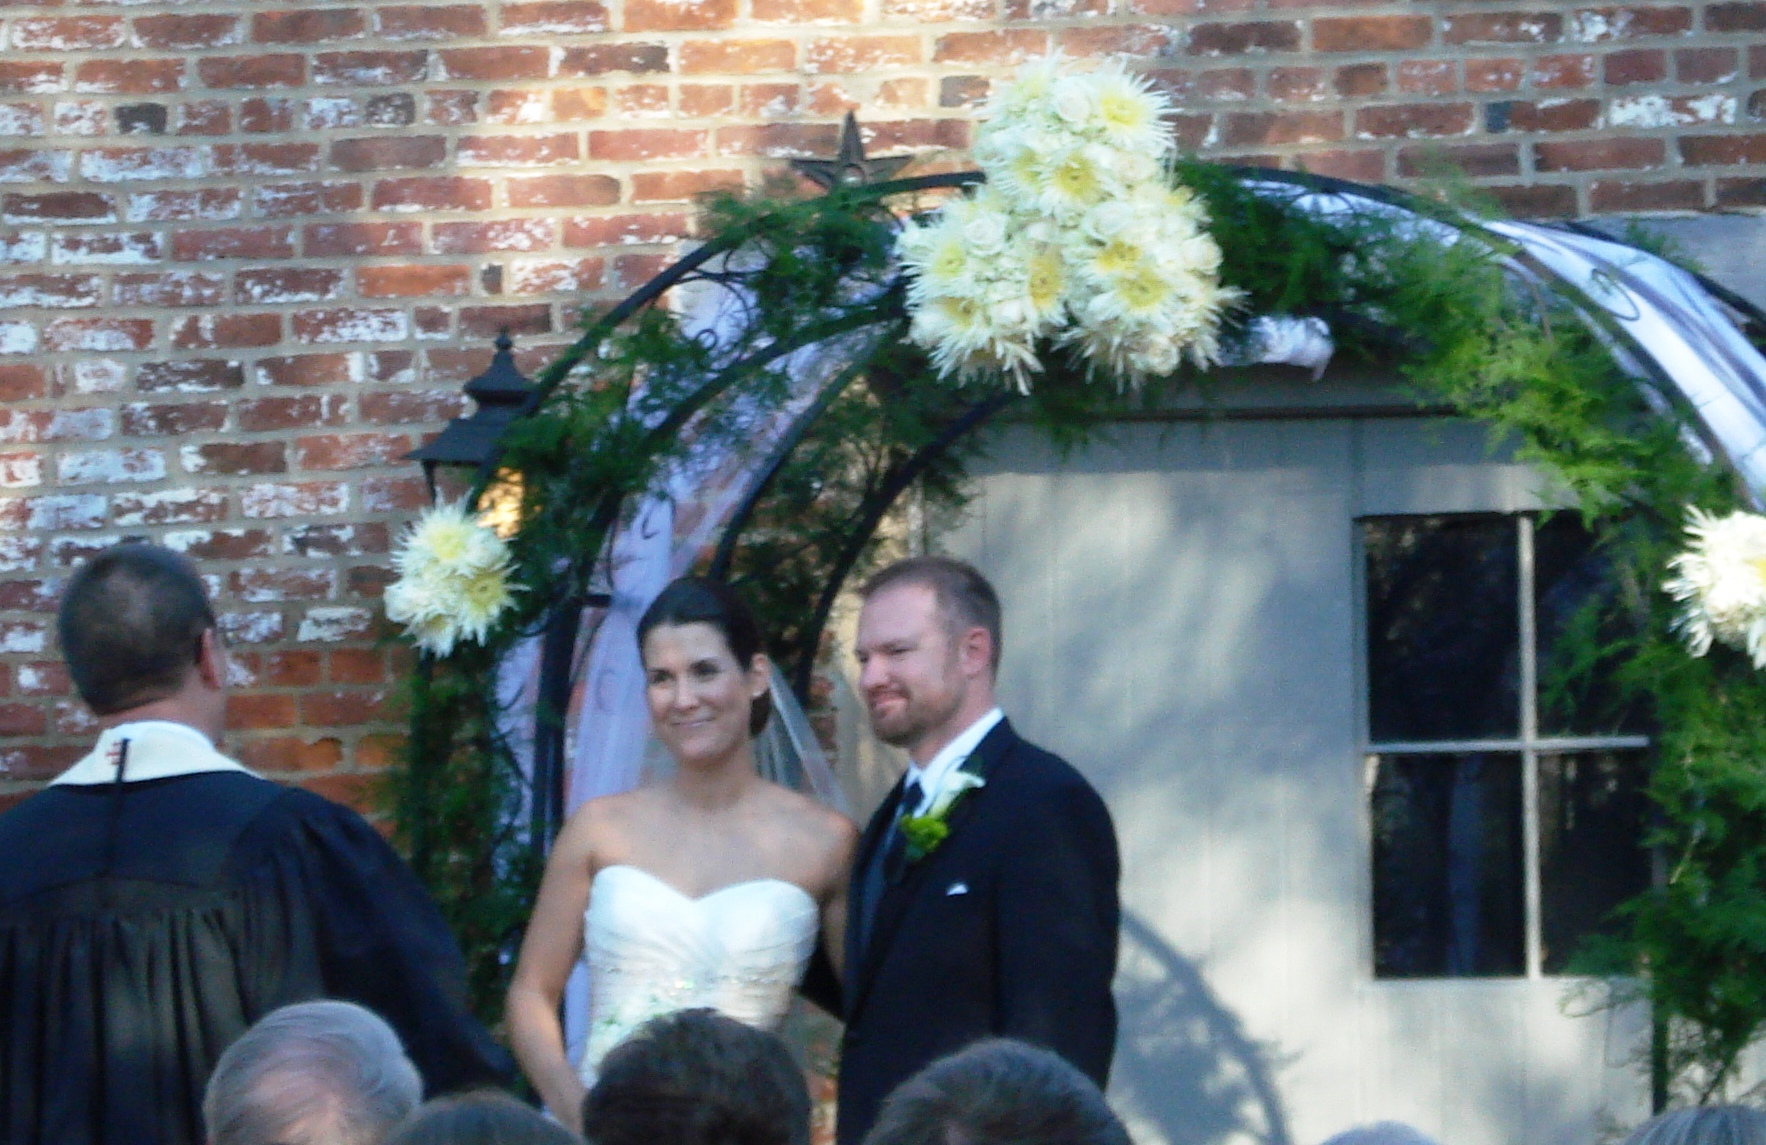 Thomas Birkby House wedding ceremony